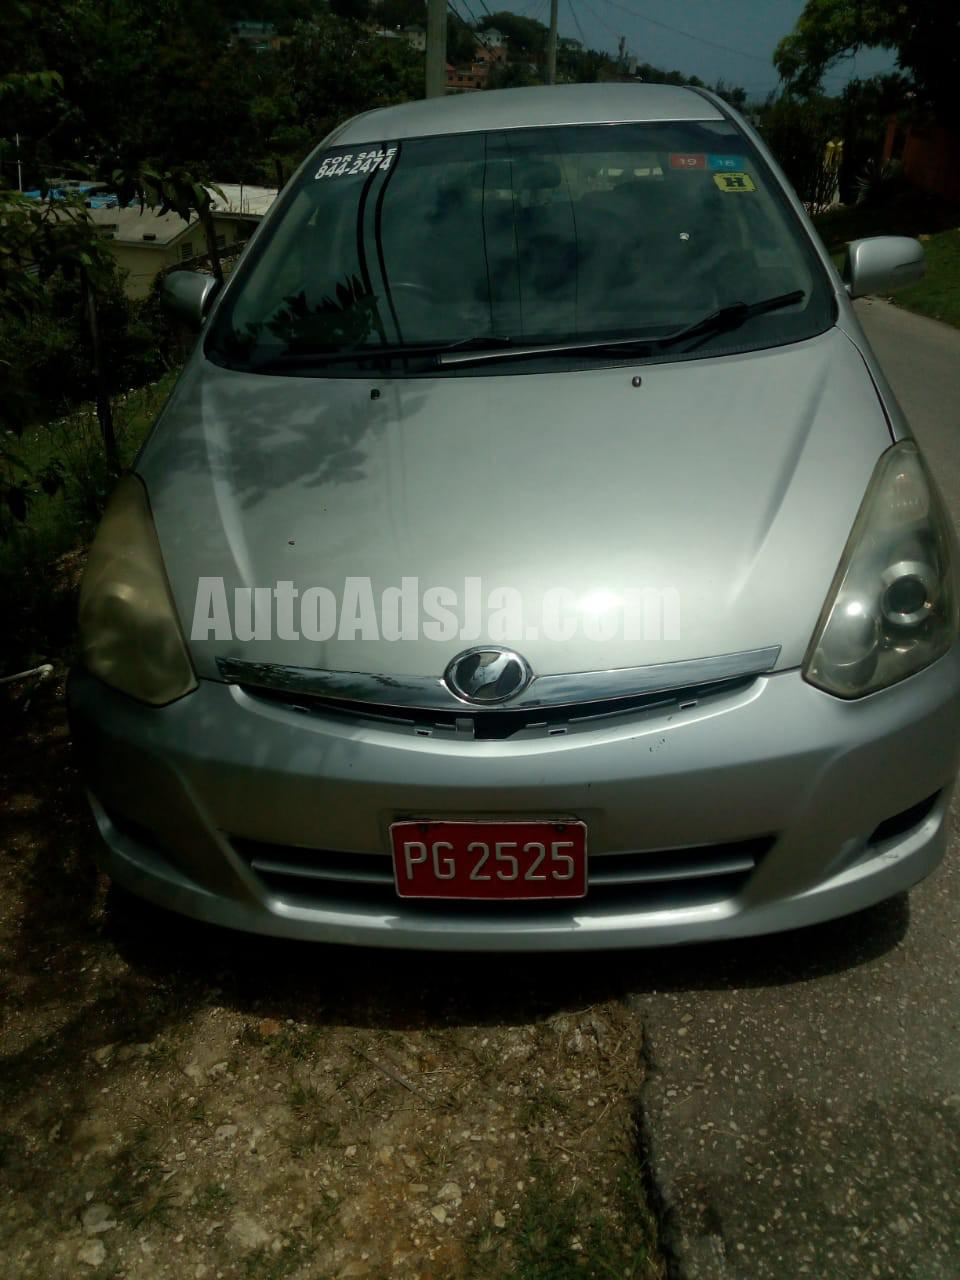 2007 Toyota Wish for sale in Westmoreland, Jamaica | AutoAdsJa com